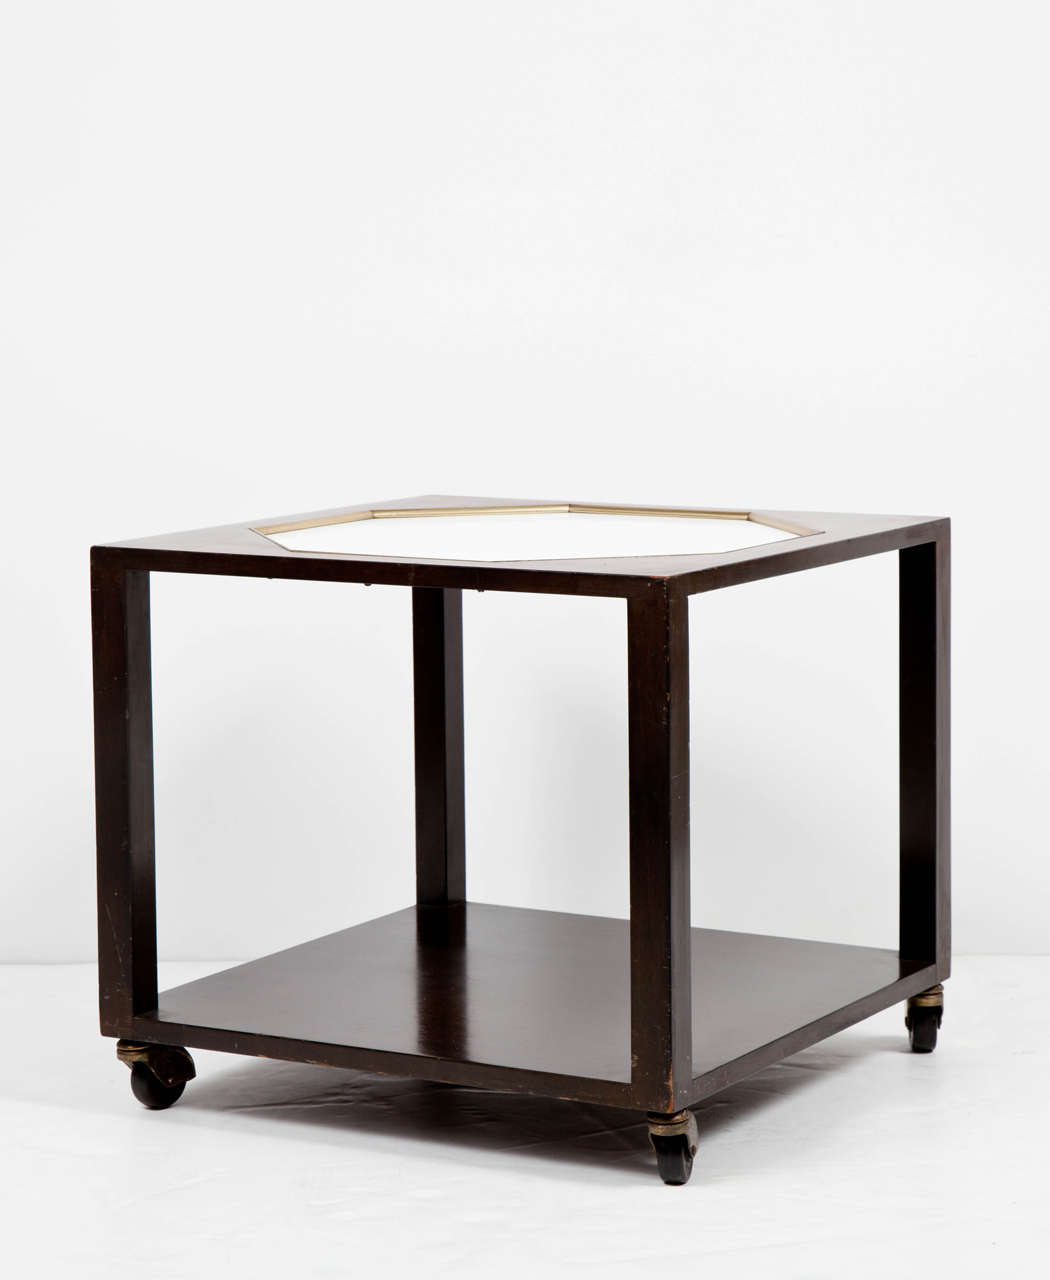 Mid-20th Century Walnut End Table with White Inset Top in the Manner of Harvey Probber For Sale